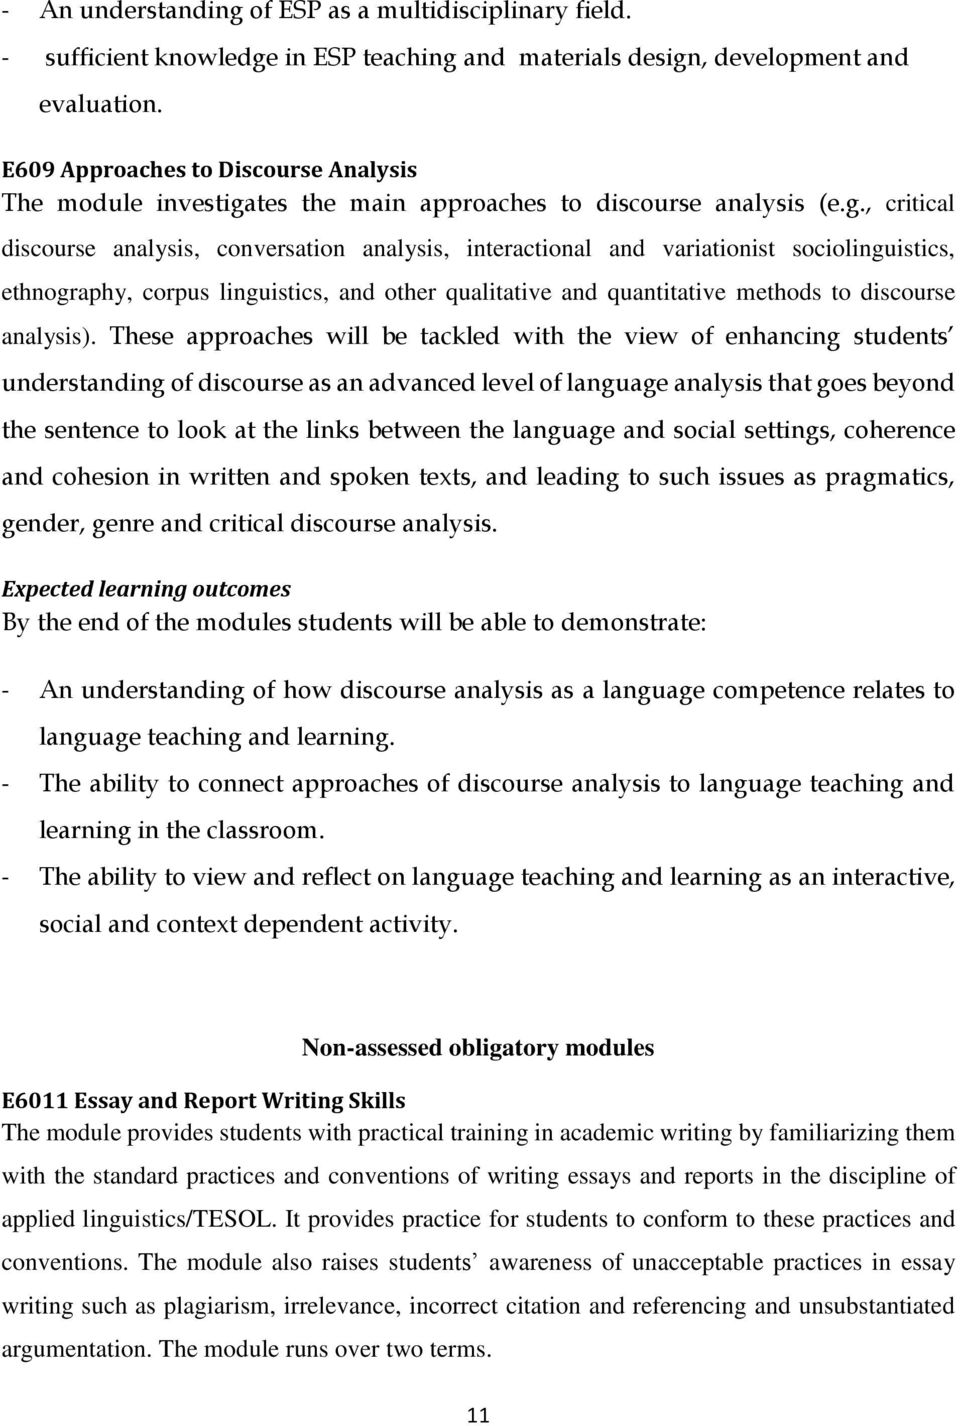 tes the main approaches to discourse analysis (e.g.